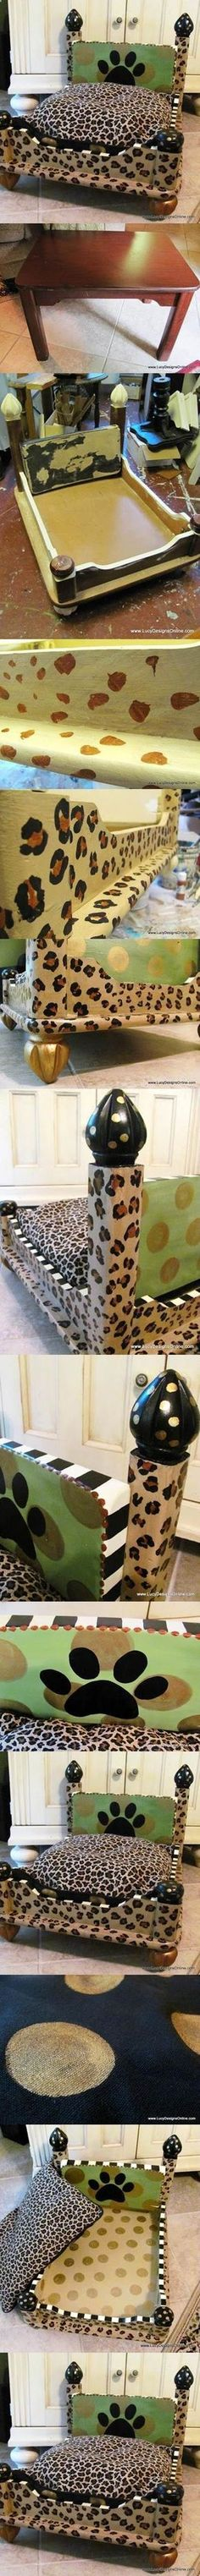 DIY Leopard Print Dog Bed from an End Table. Great tutorial on how to build one.